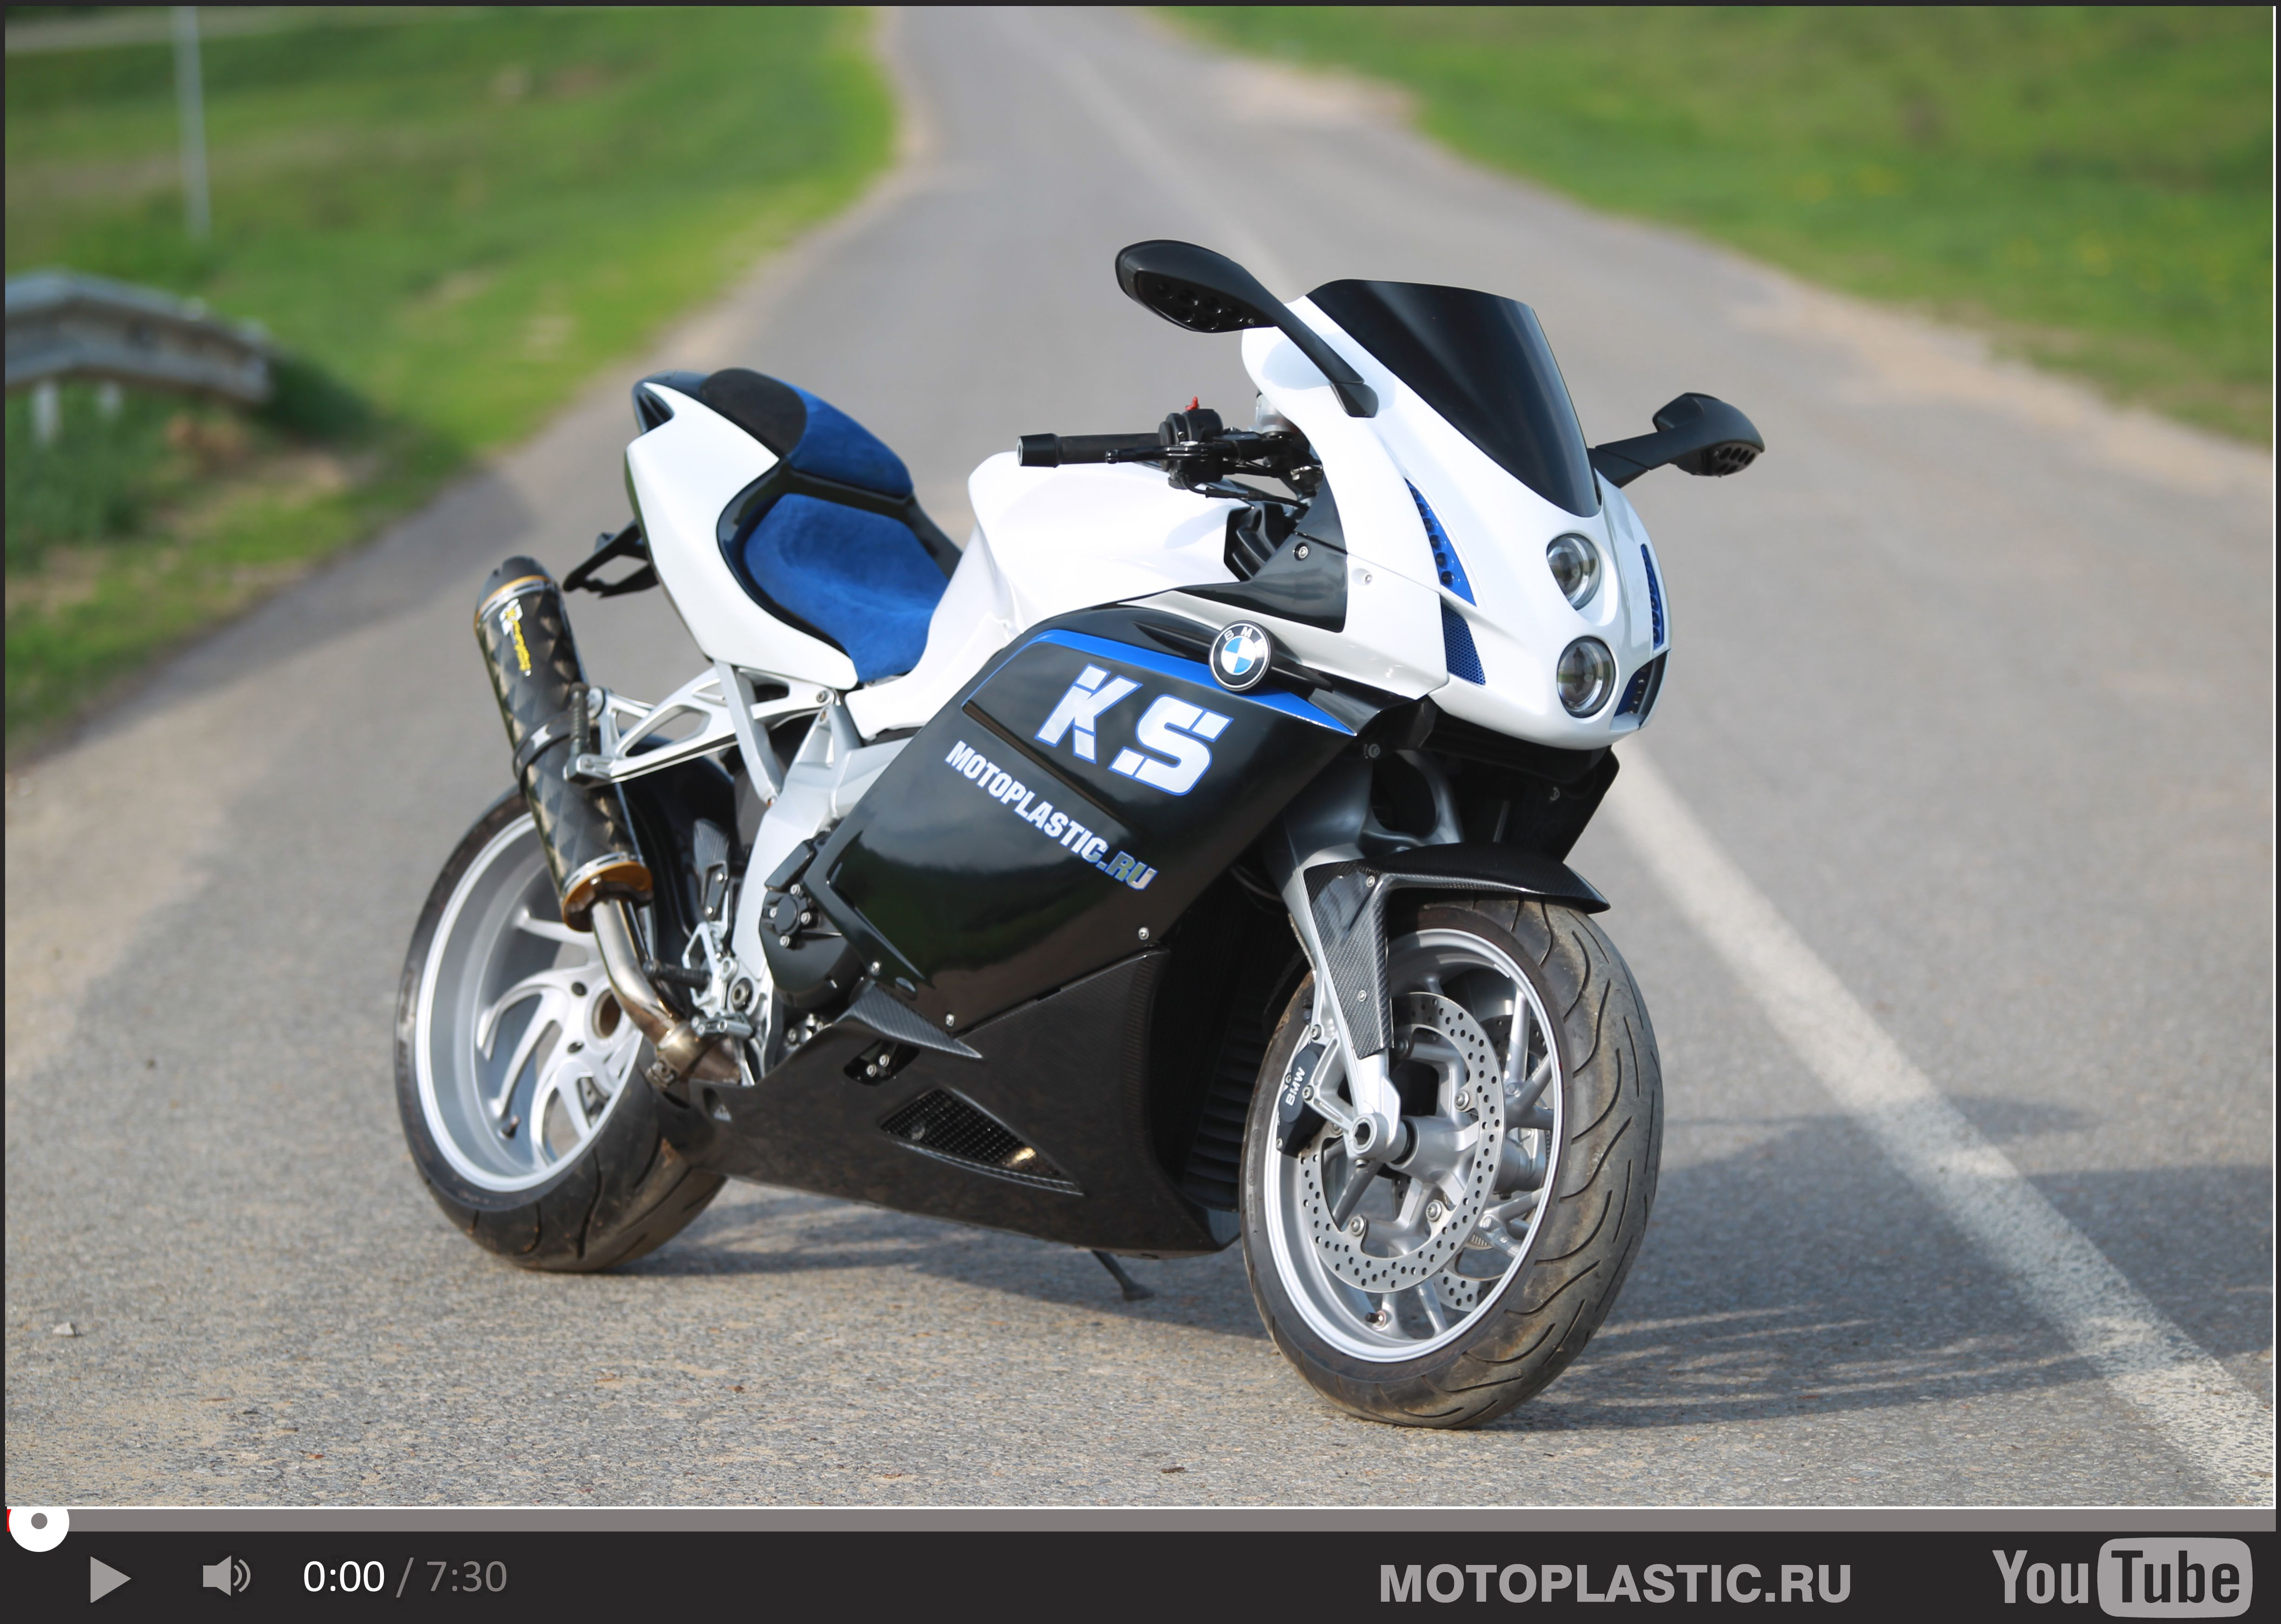 bmw k 1300 s , tuning , custom , front fairing and tail | bmw k